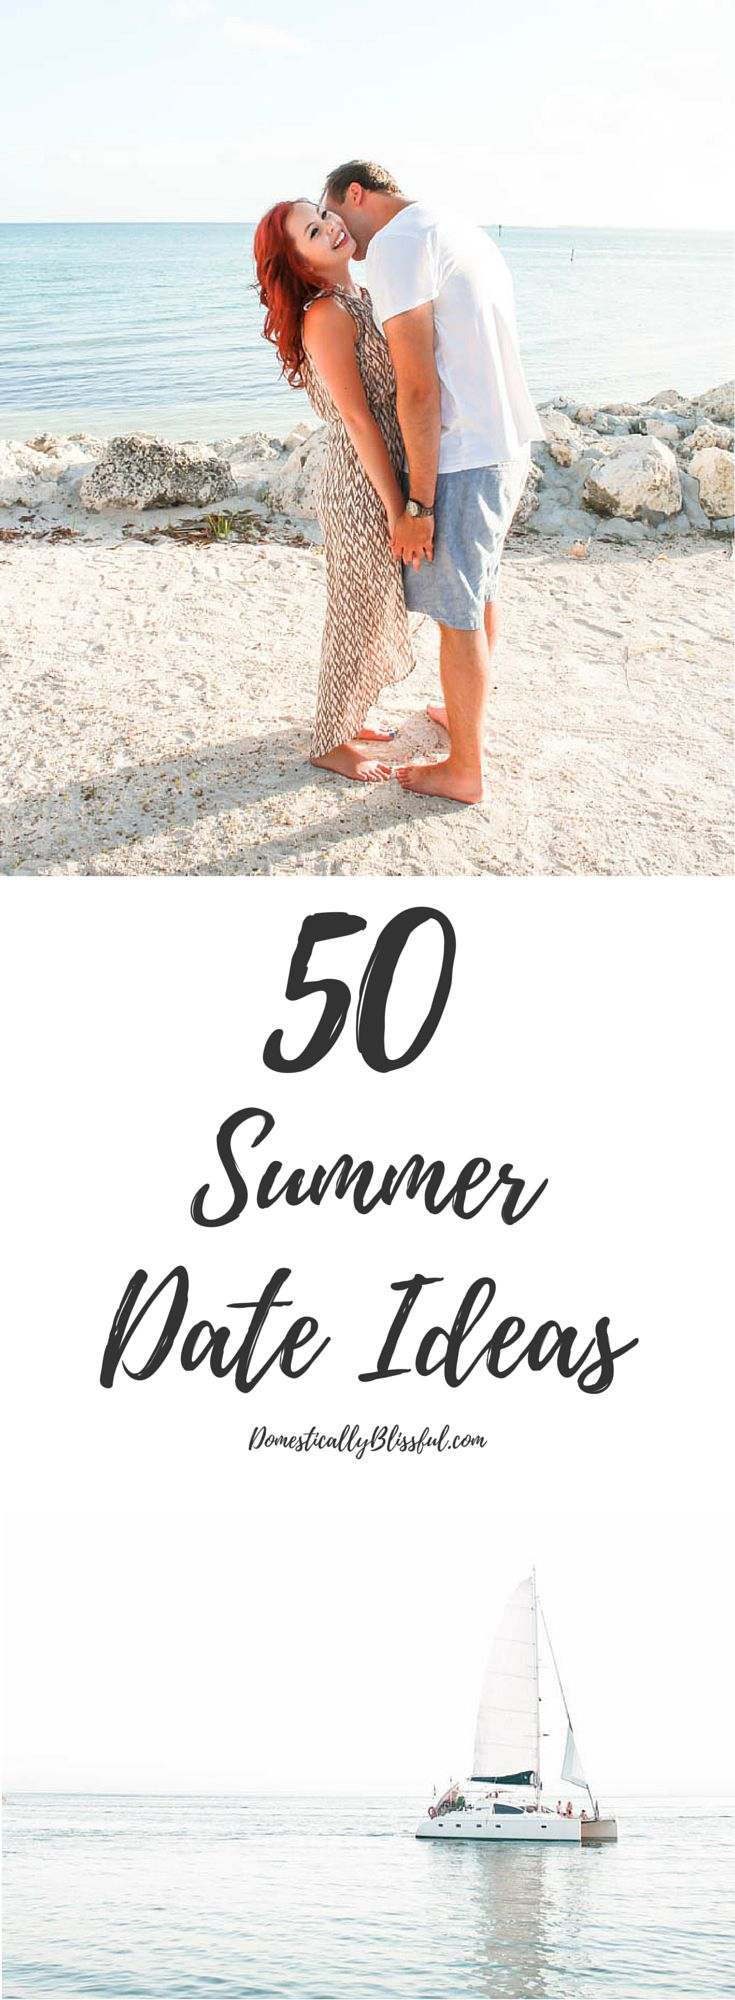 159 best He and Me images on Pinterest | My love, Marriage advice ...